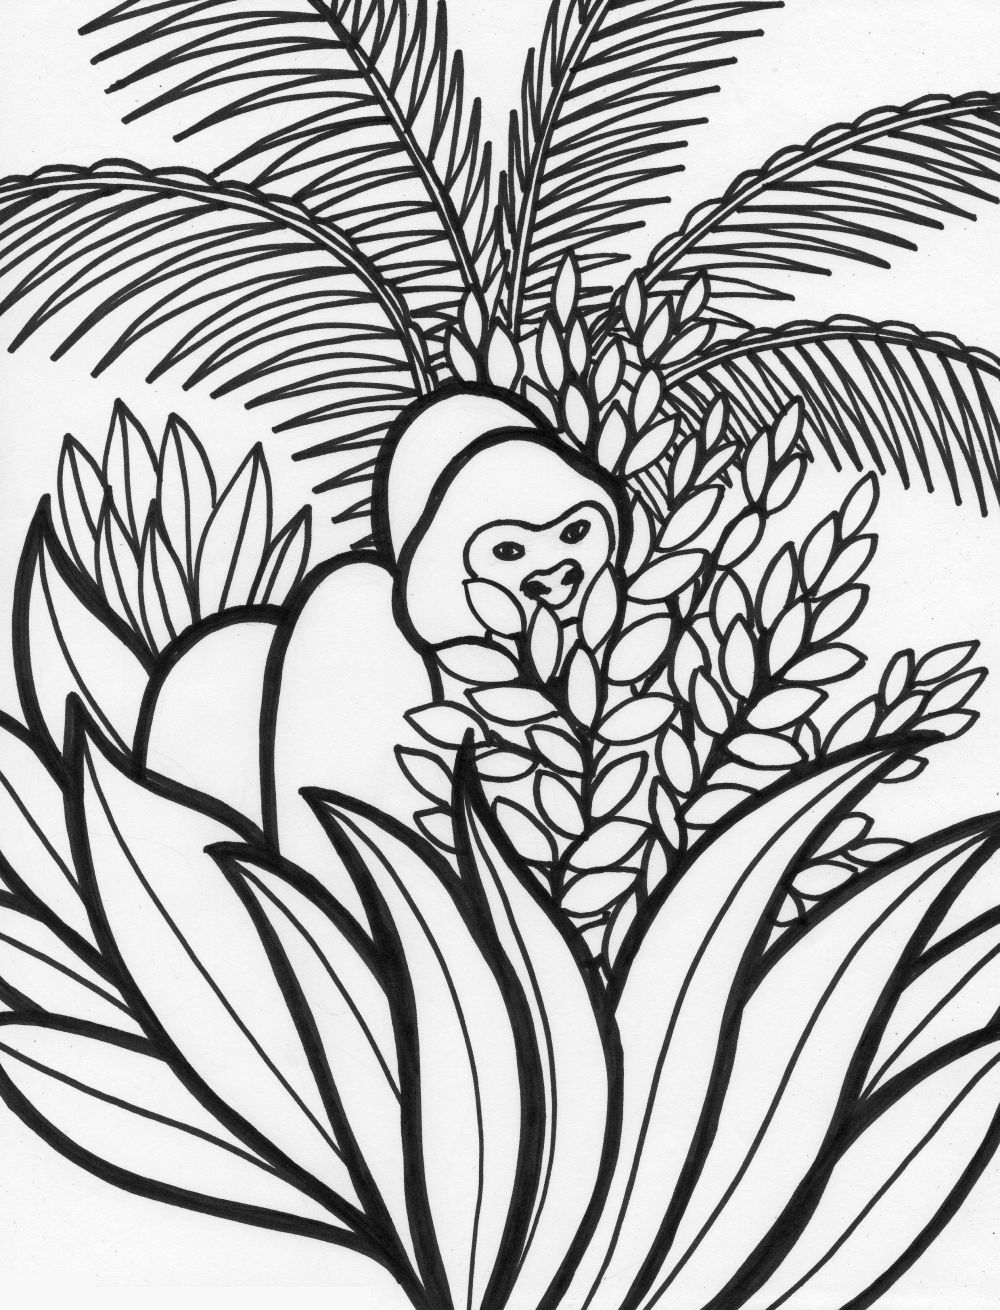 rainforest animal coloring pages monkey hanging on snake rainforest coloring page rainforest pages animal coloring